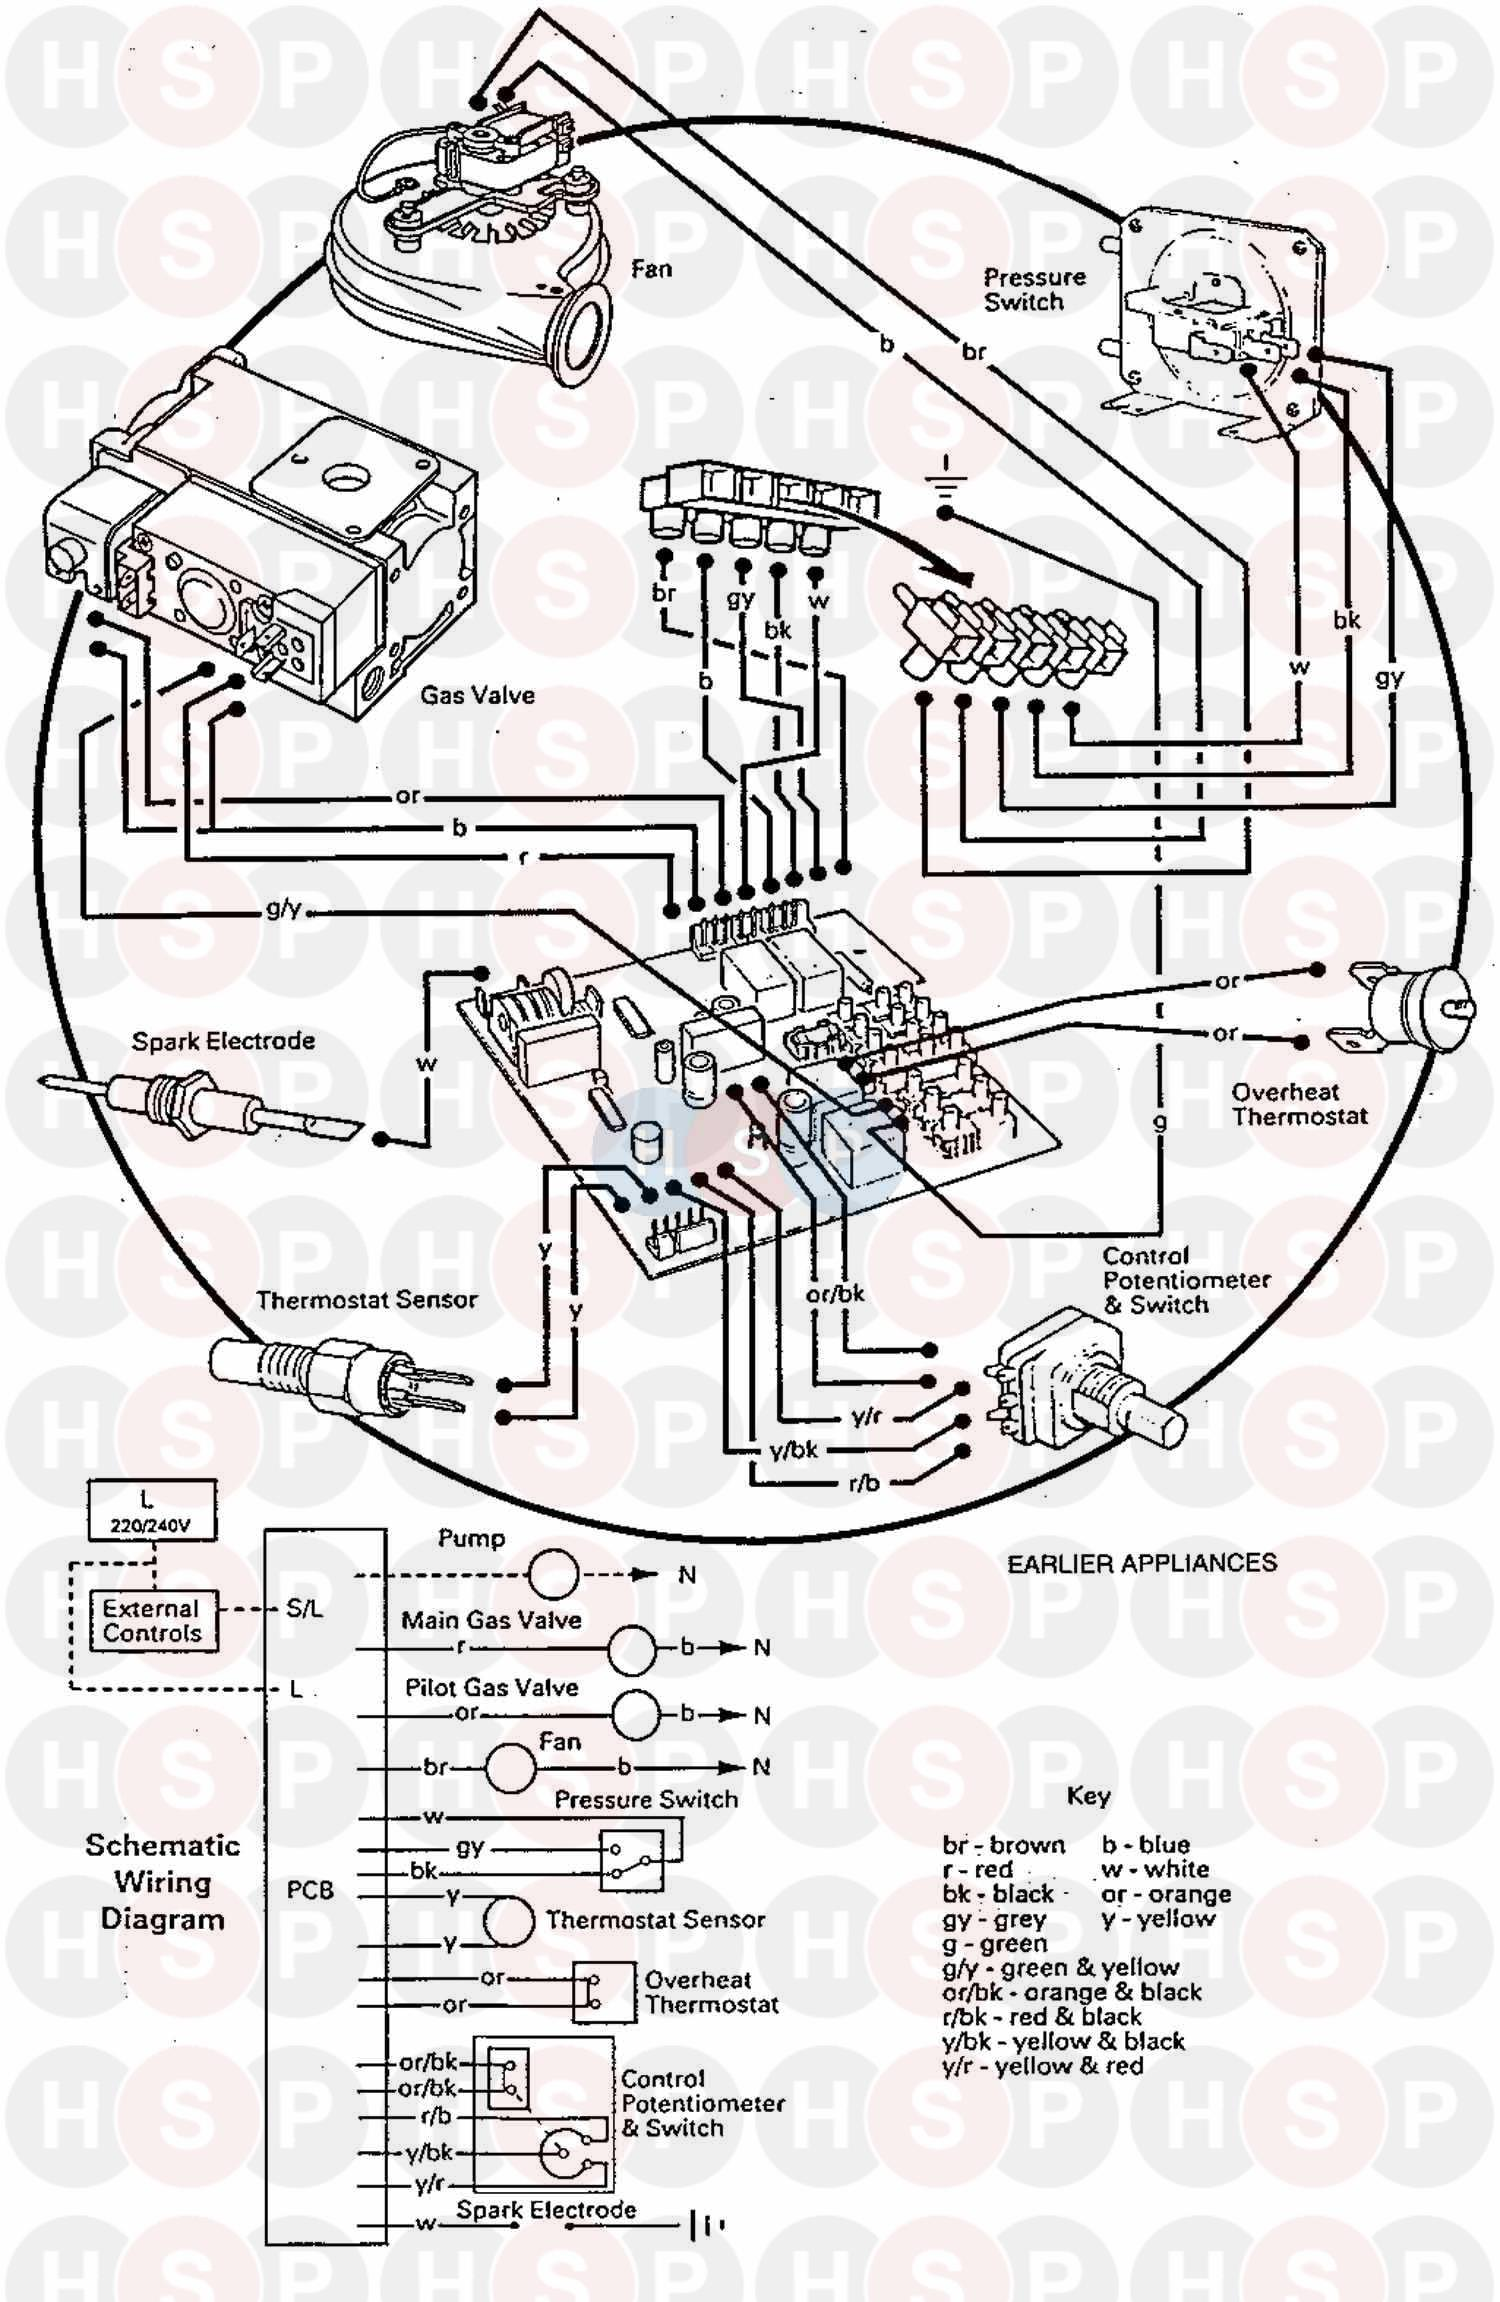 Baxi SOLO PF 2 60 (Wiring Diagram (Earlier Applia) Diagram